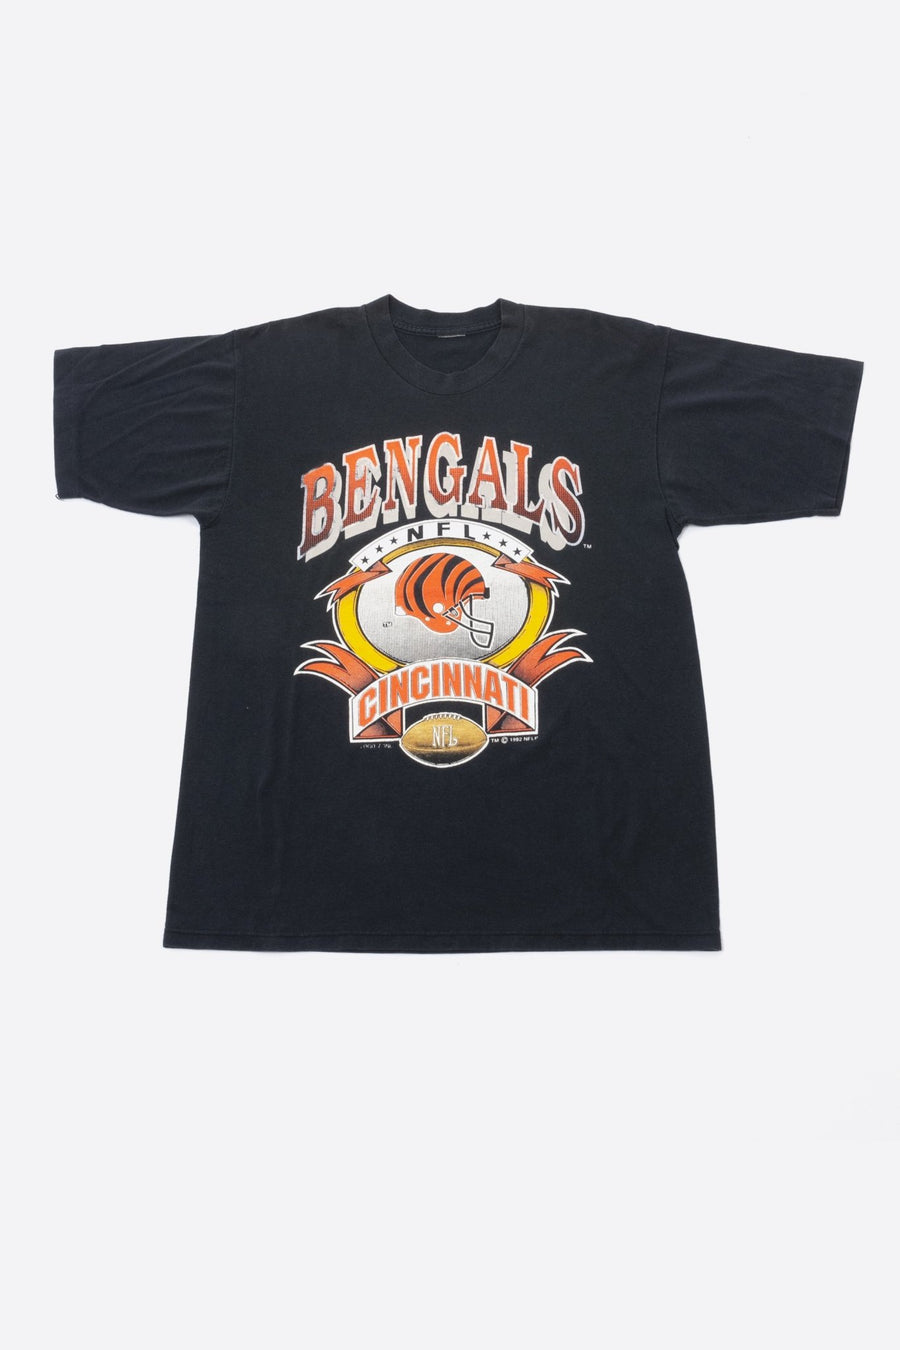 T-shirt Bengals NFL - WASTED PARIS